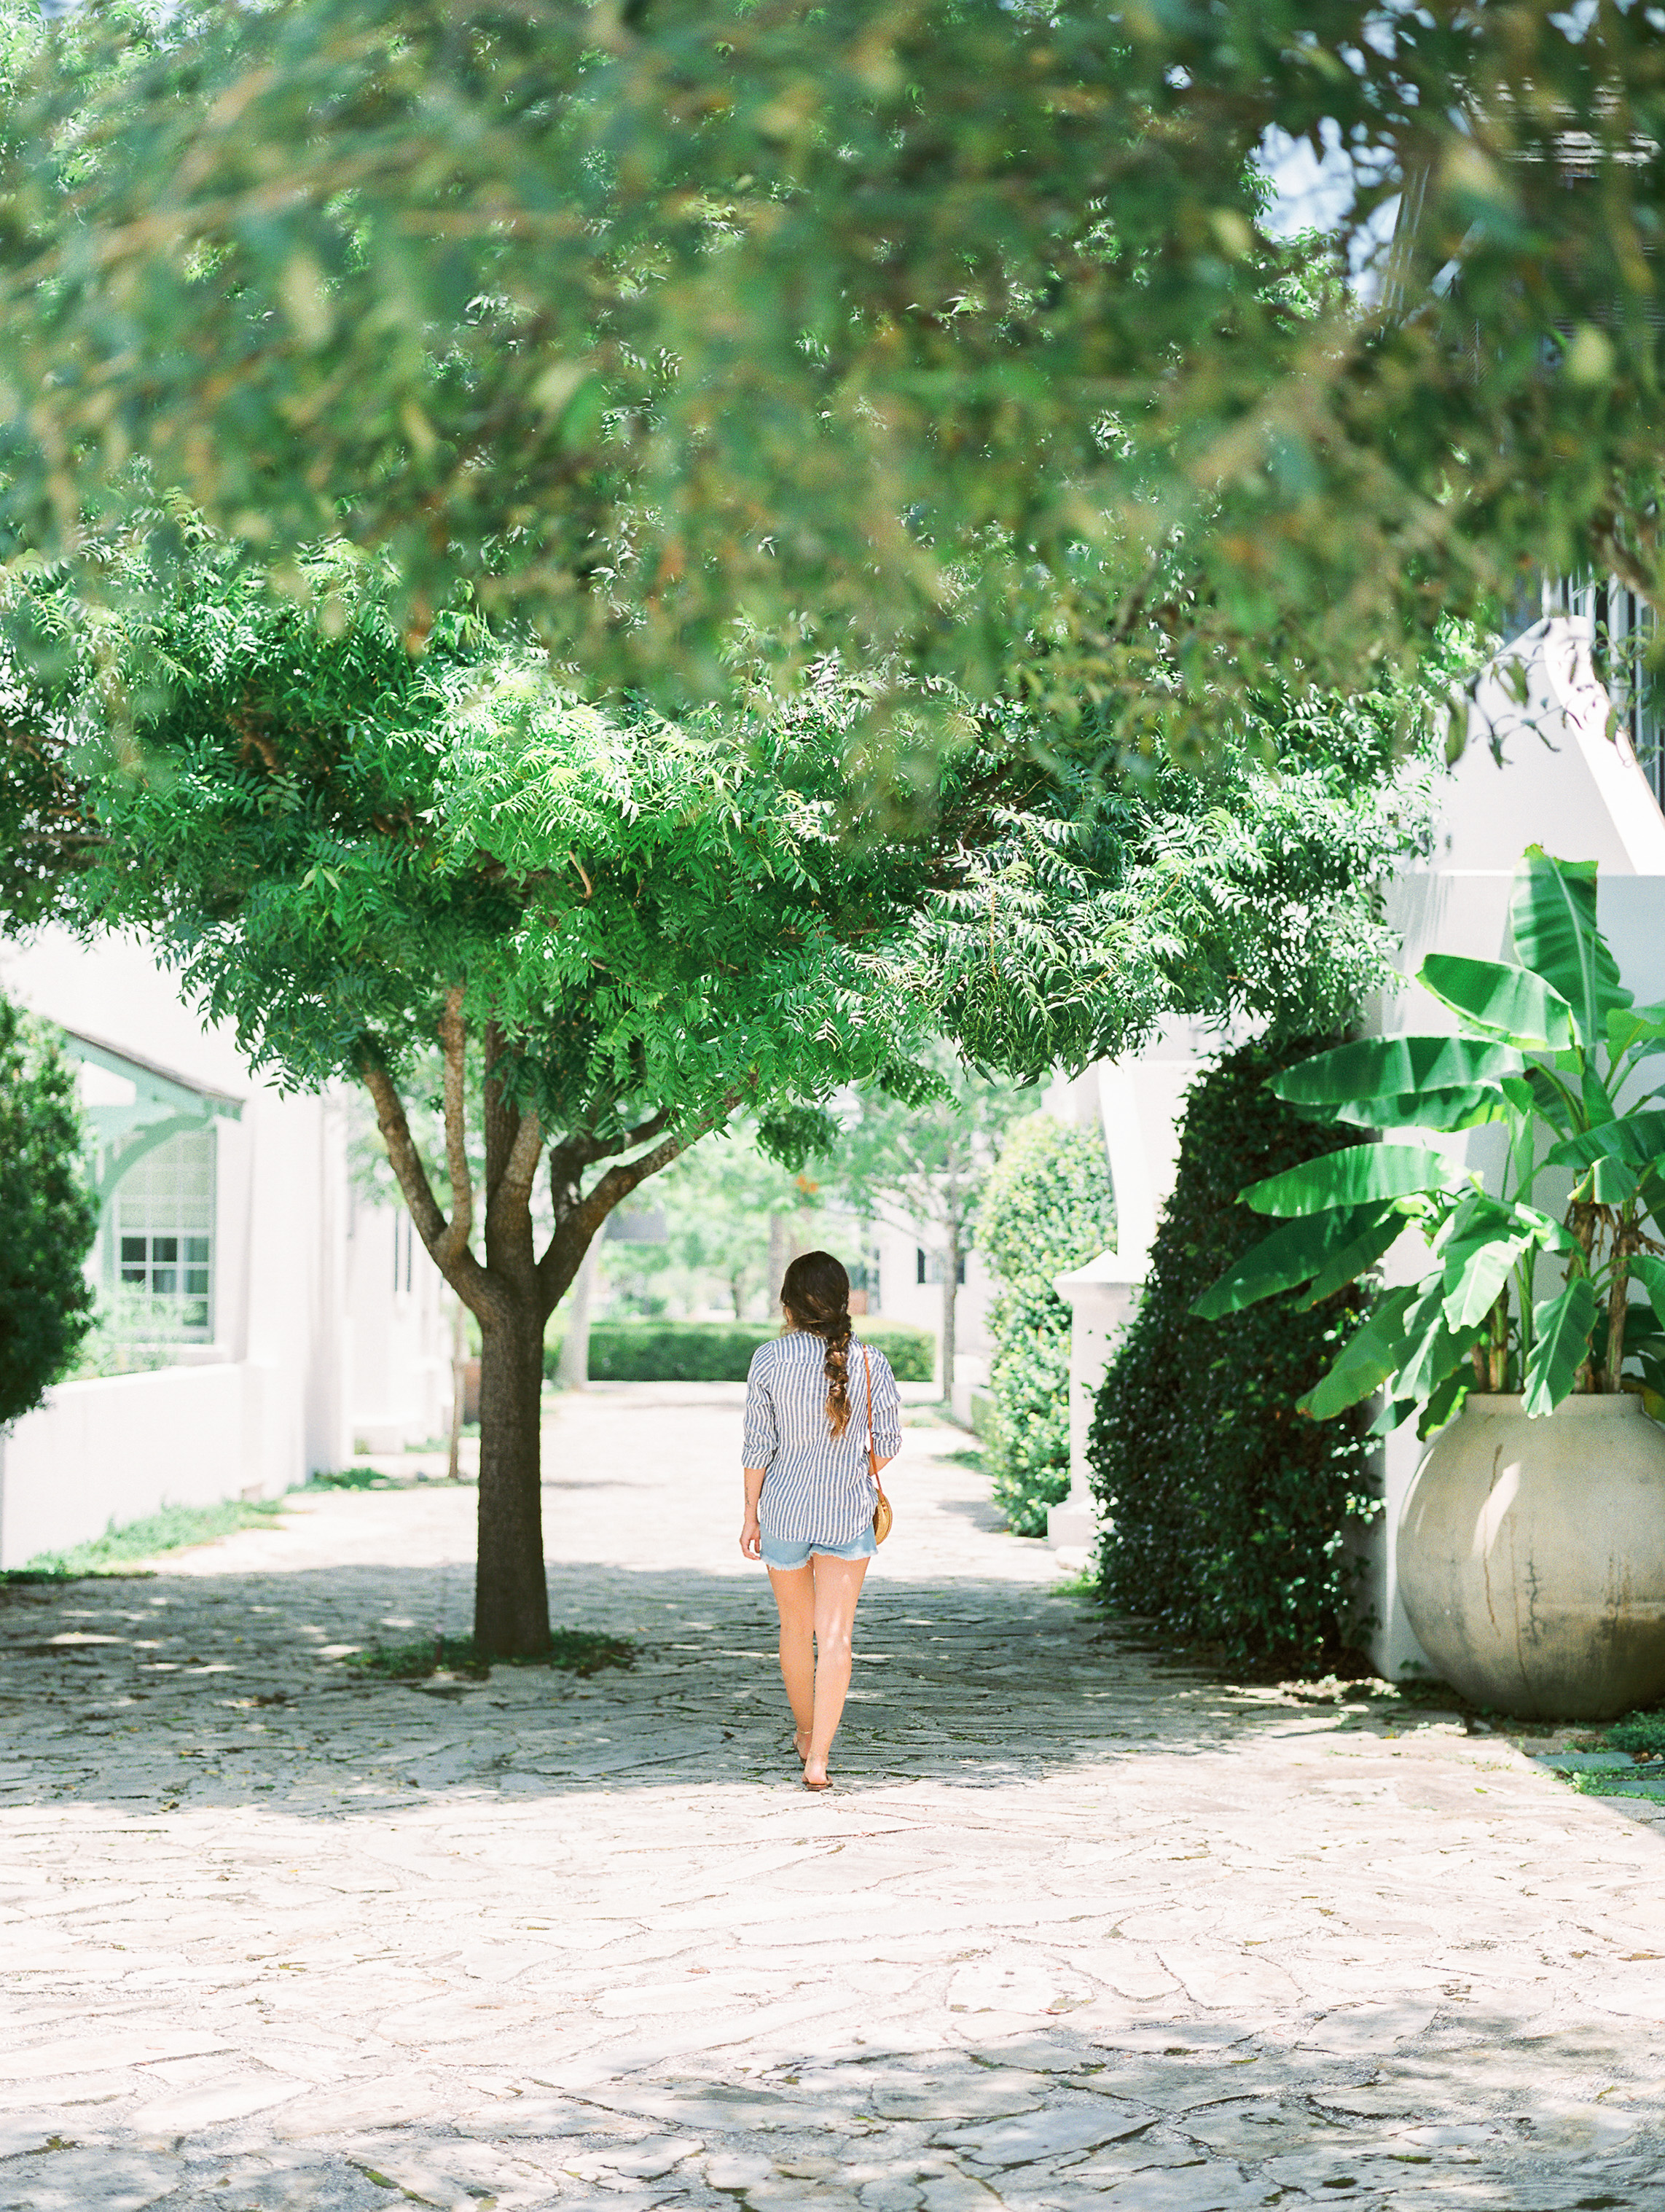 Alys_Beach_Travel_Film_Editorial_Wardrobe_30A_Fallen_Photography-39.JPG